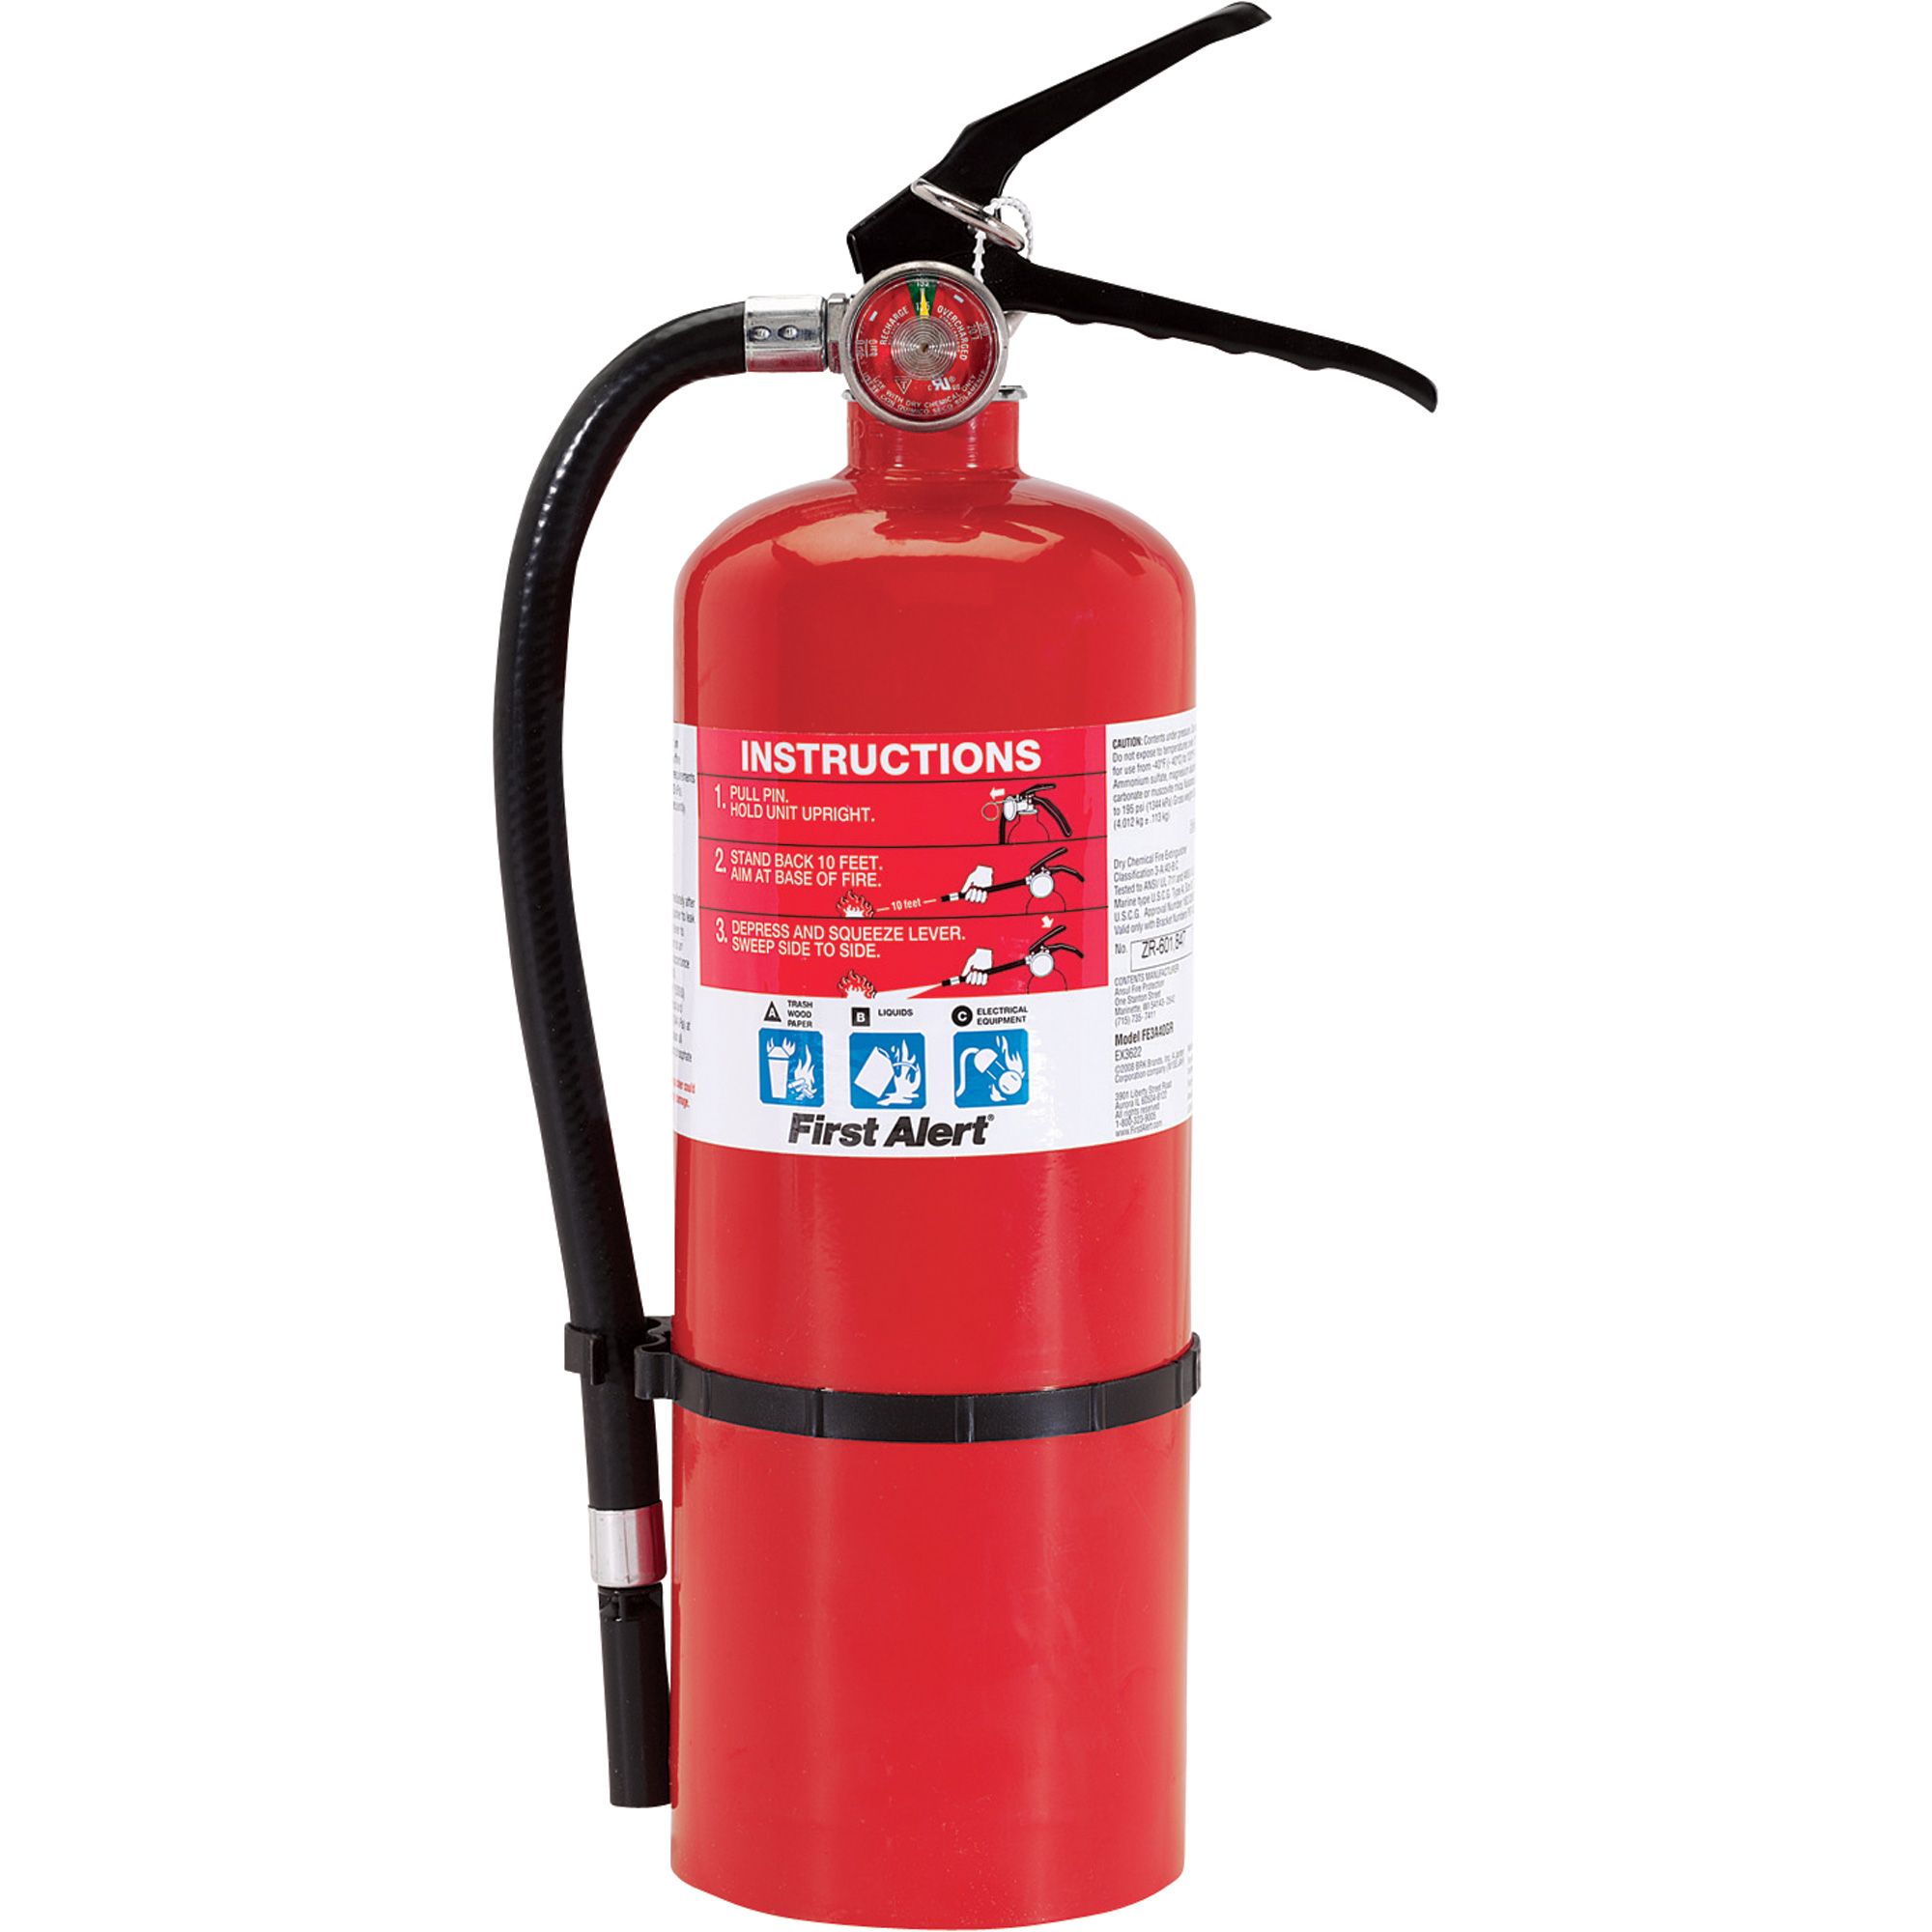 Fire extinguisher pictures clip art.